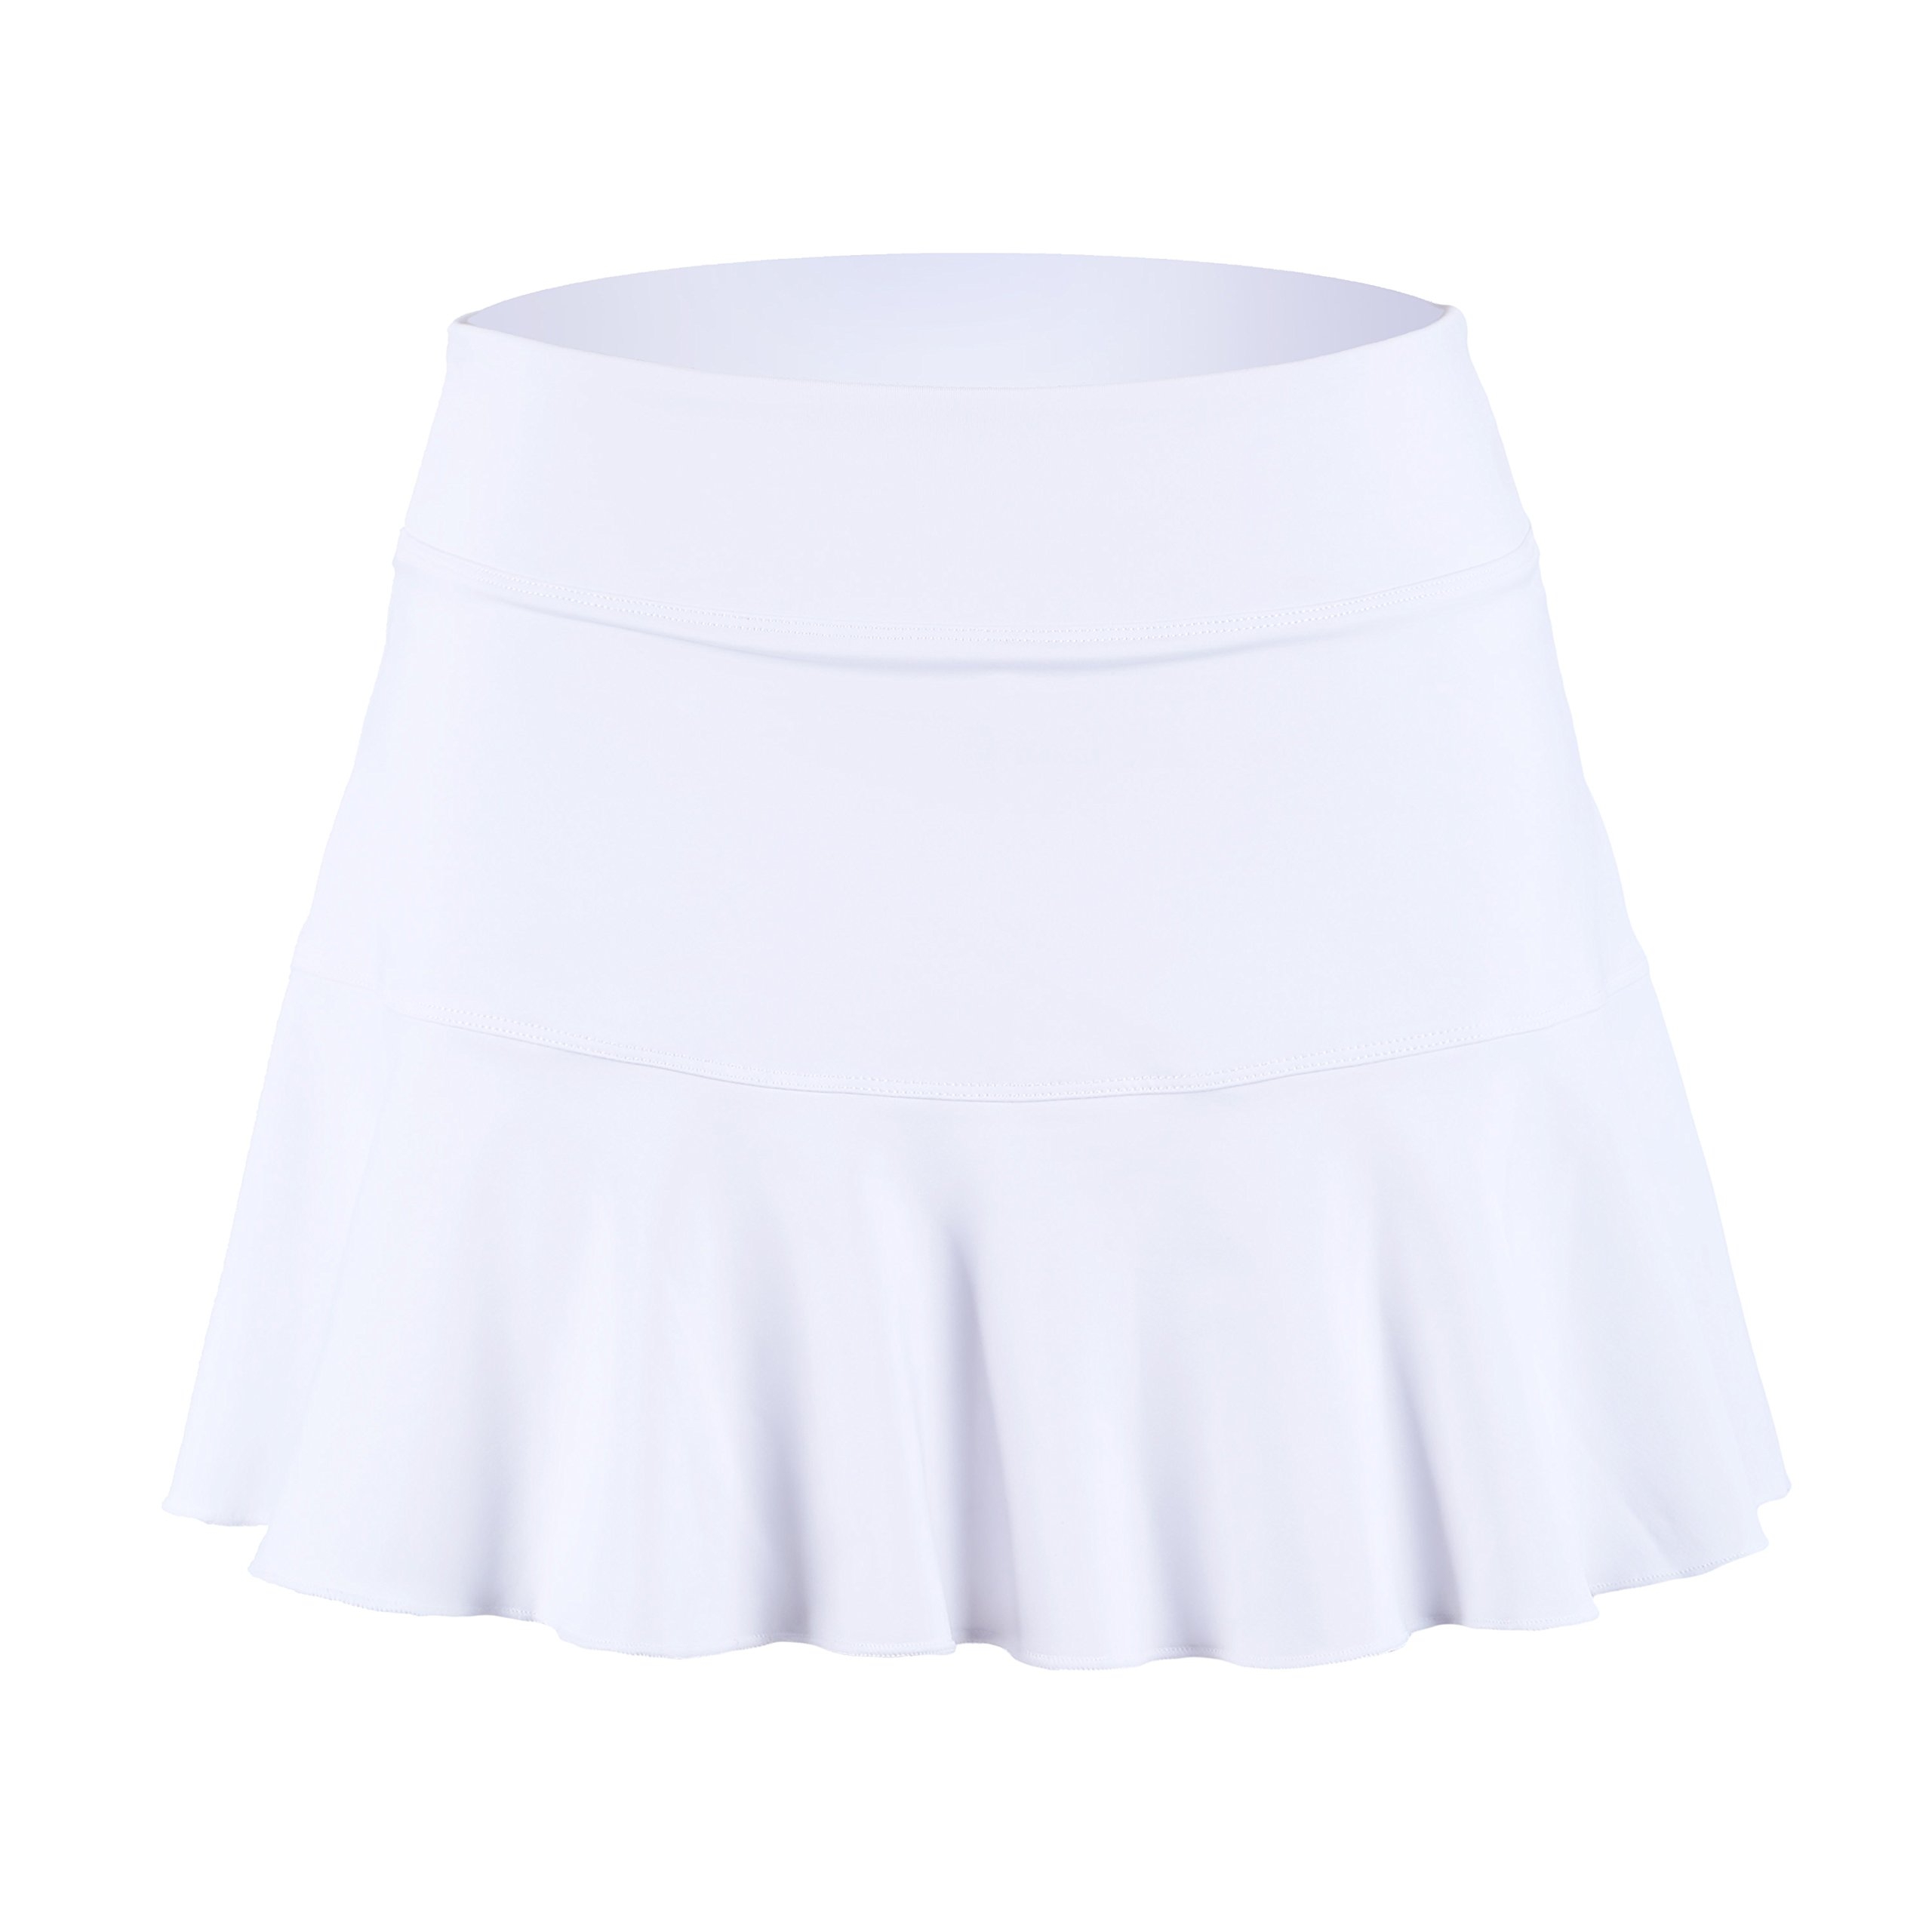 32e-SANERYI Women's Basic Elastic Tennis Skirt with Shorts Active Skort (sk25,S,White) by 32e-SANERYI